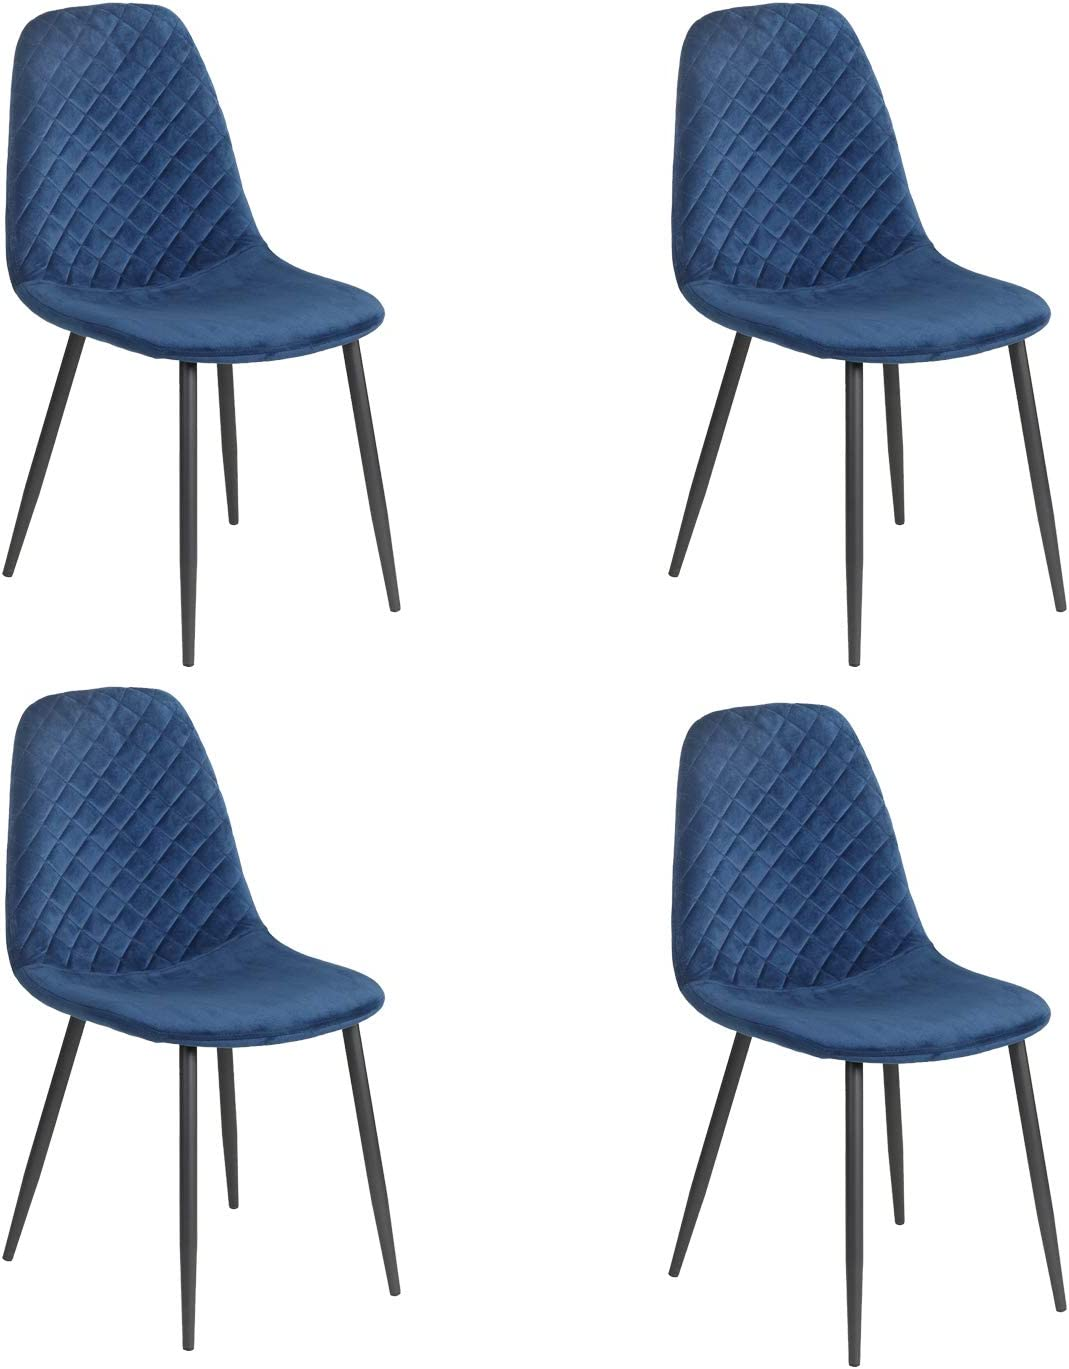 JYMTOM Dining Chairs Set of 2 4 Velvet Fabric Seat with Metal Legs Backrest Office Lounge Chair Home Furniture,grey 2PC